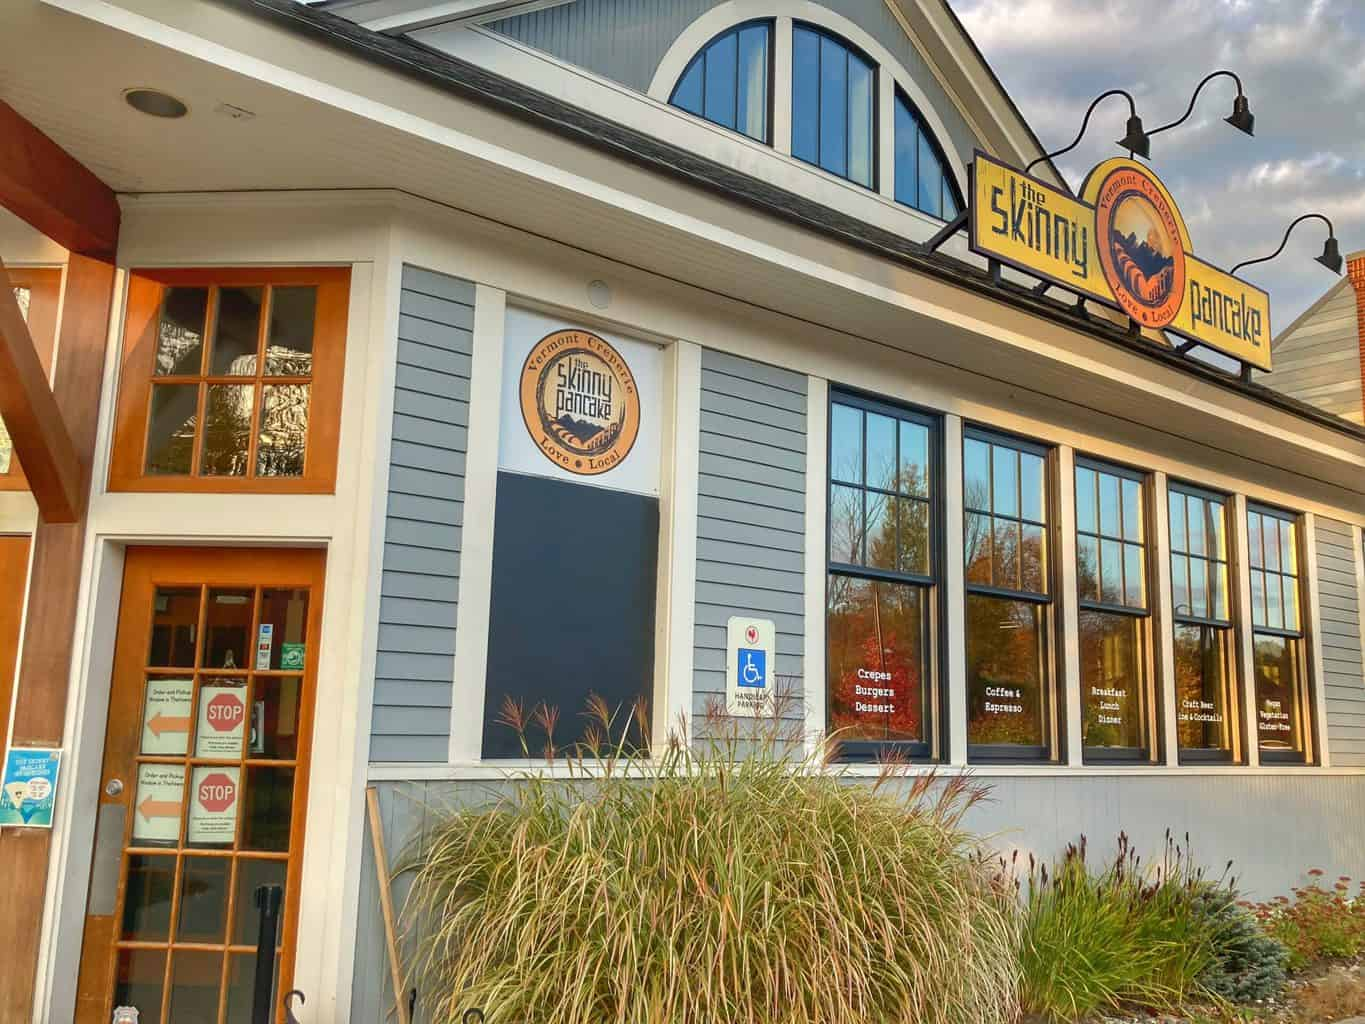 The Skinny Pancake in Quechee, Vermont